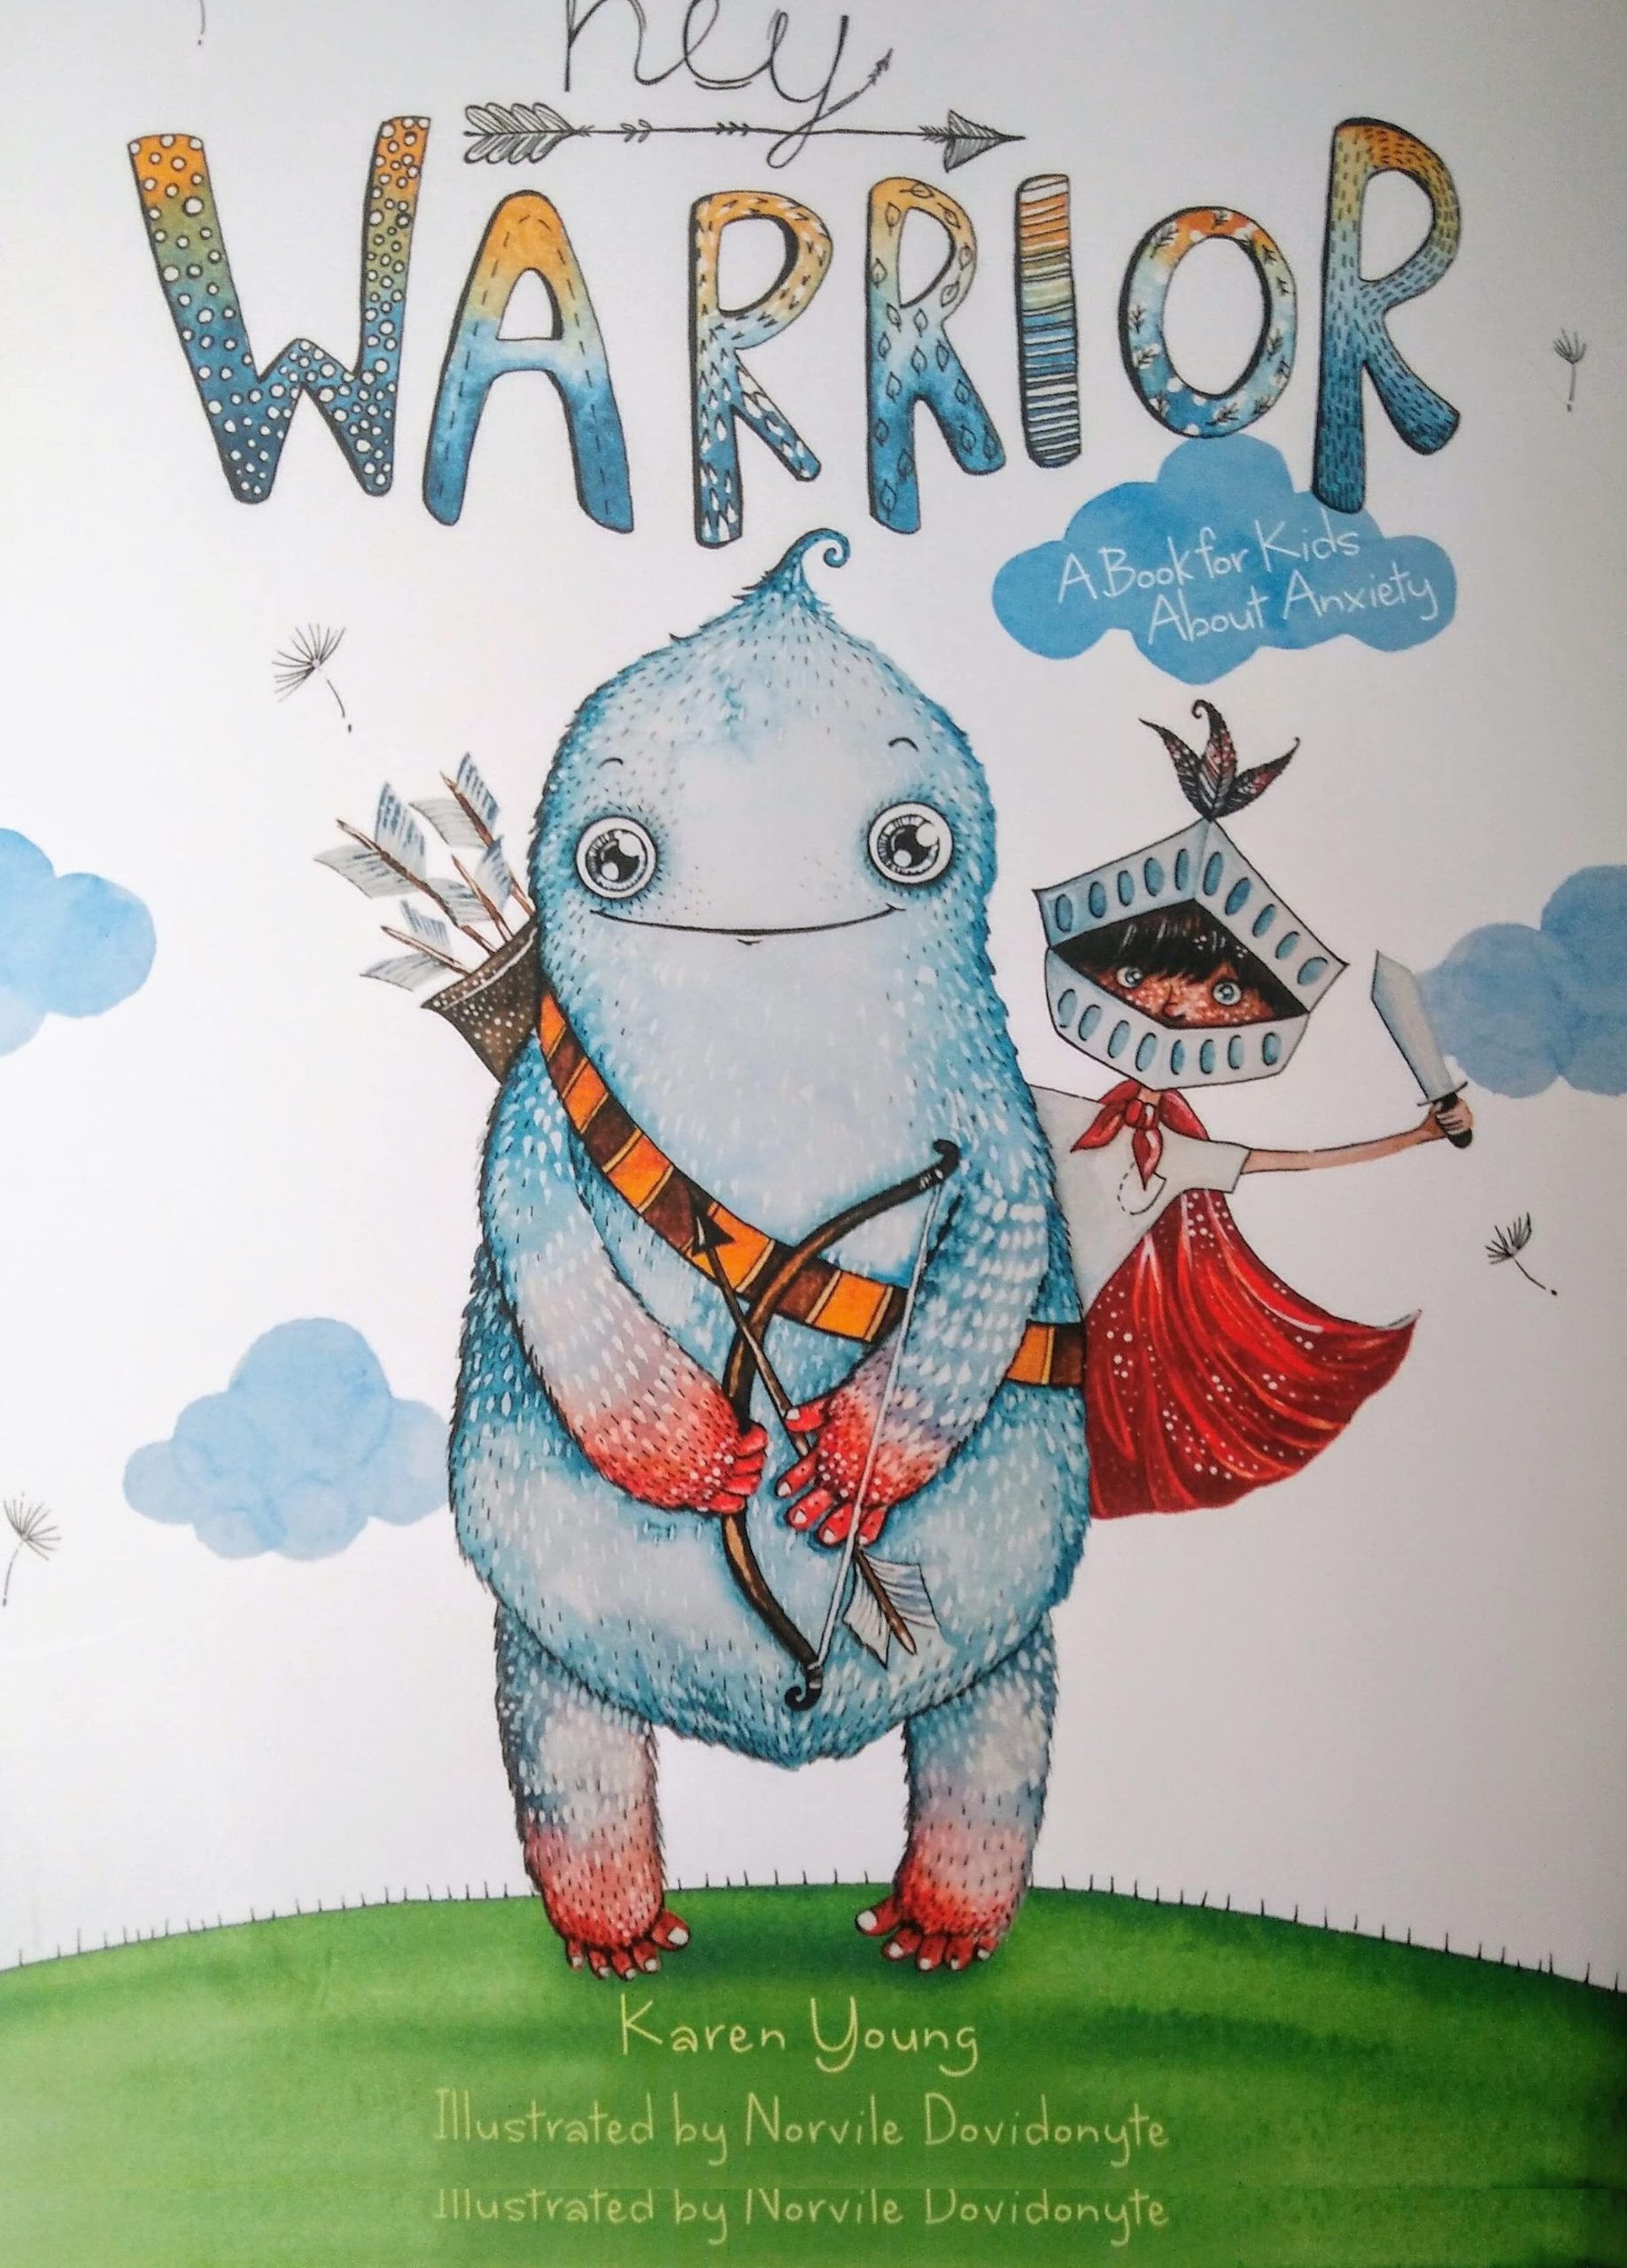 Hey Warrior cover